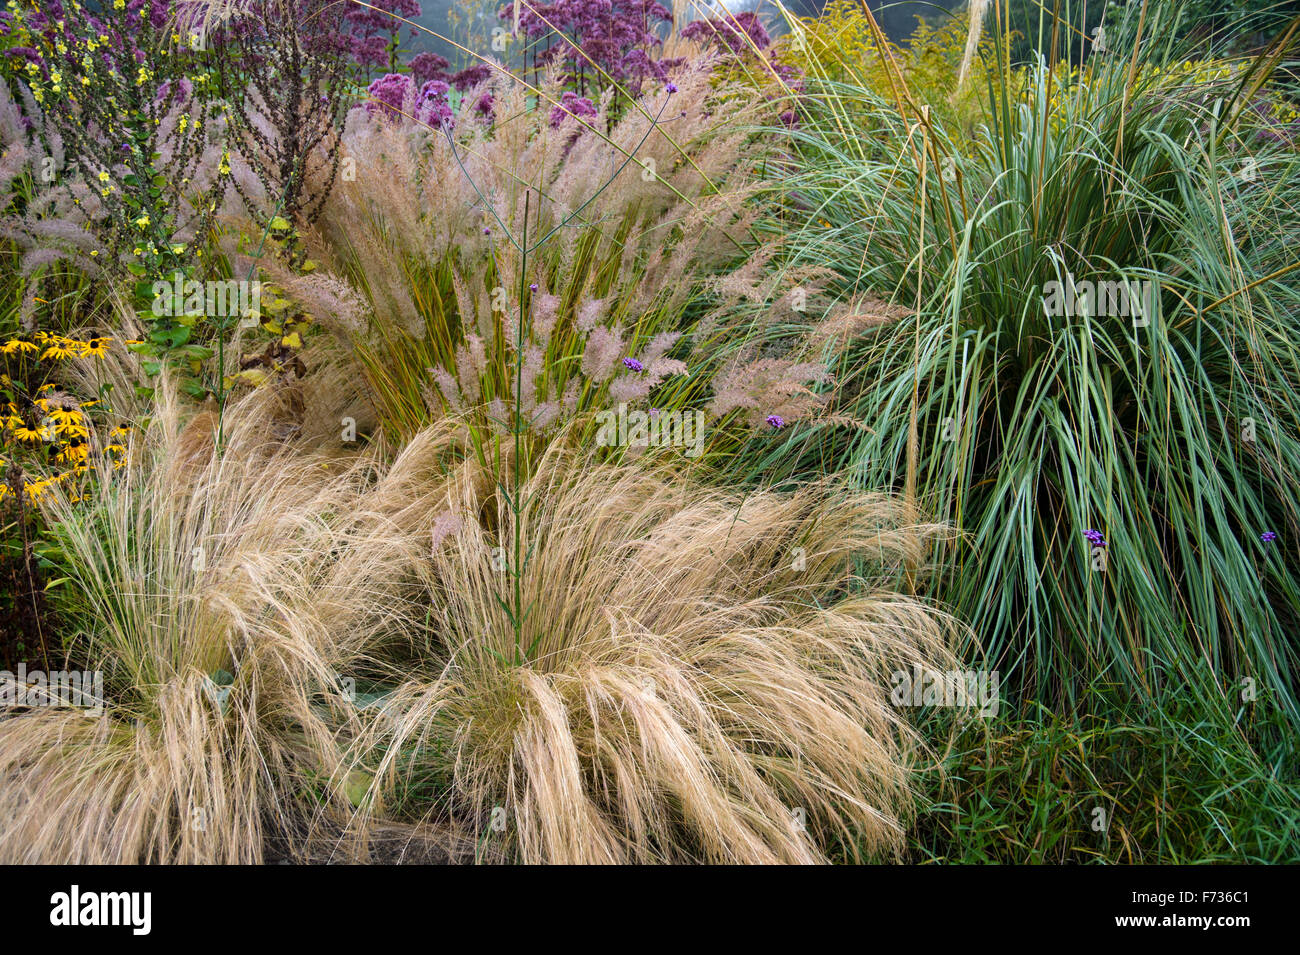 Ornamental grasses in garden border in autumn stock photo for Grasses for garden borders